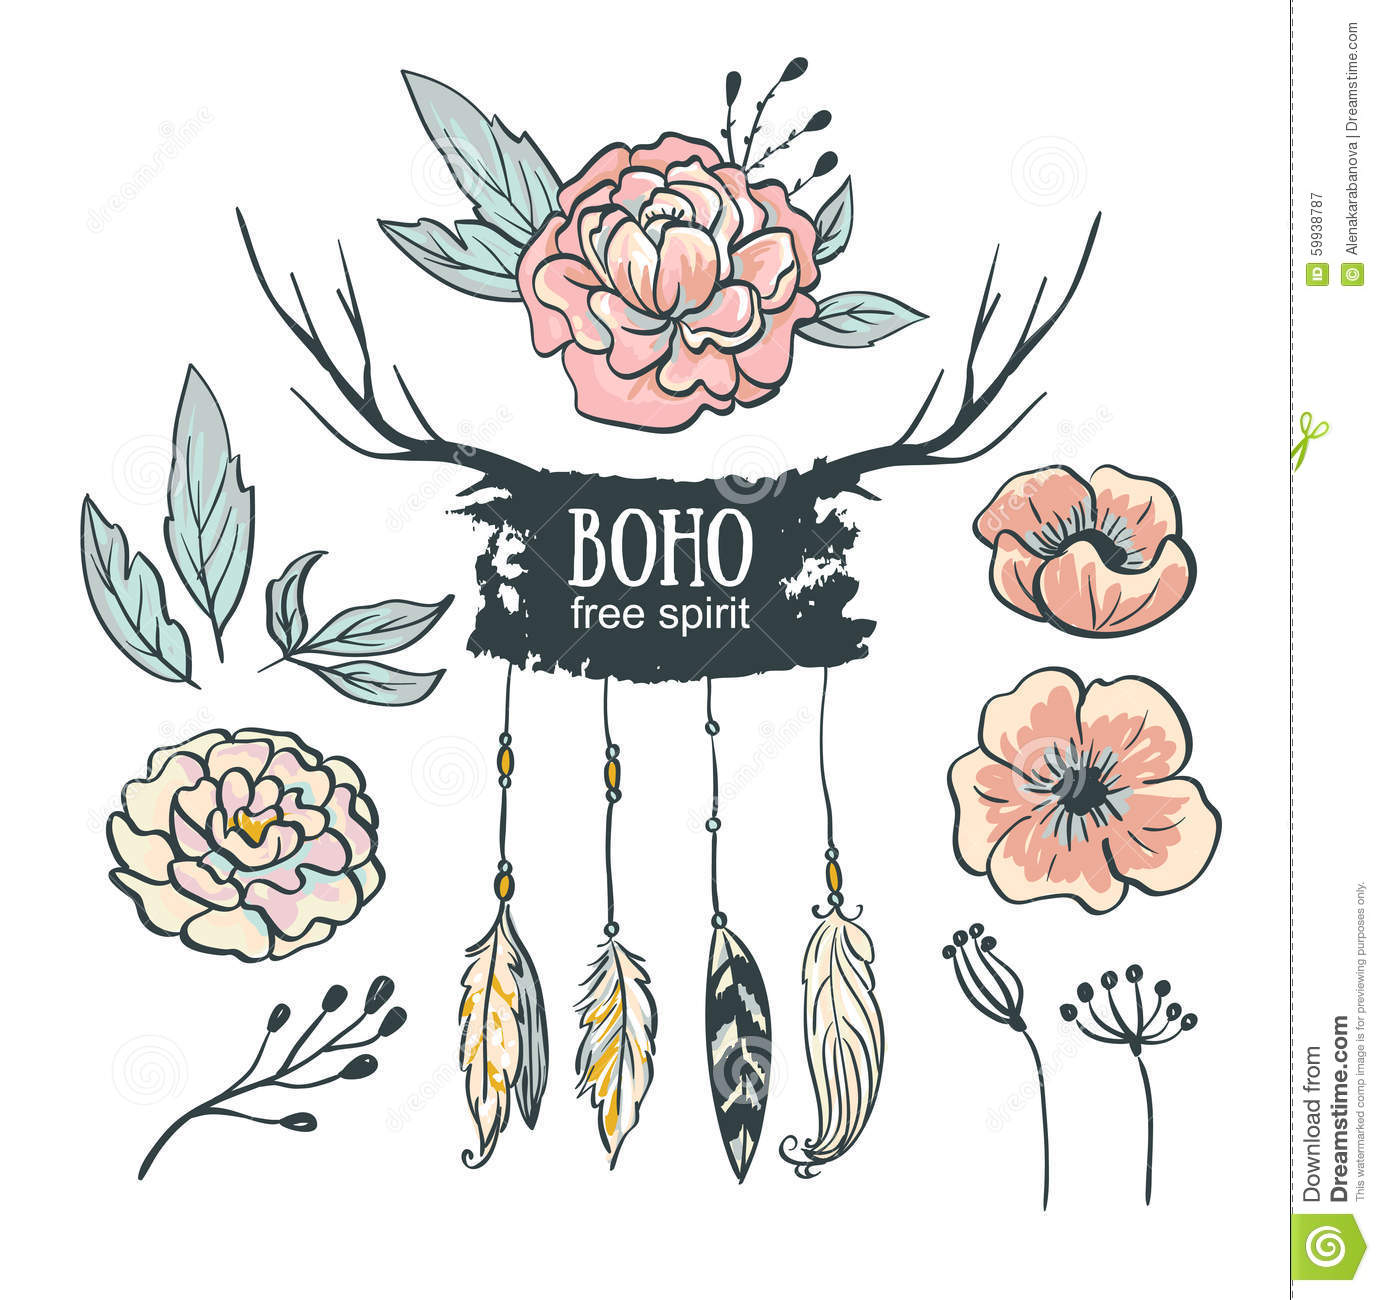 free vector green boho - photo #2